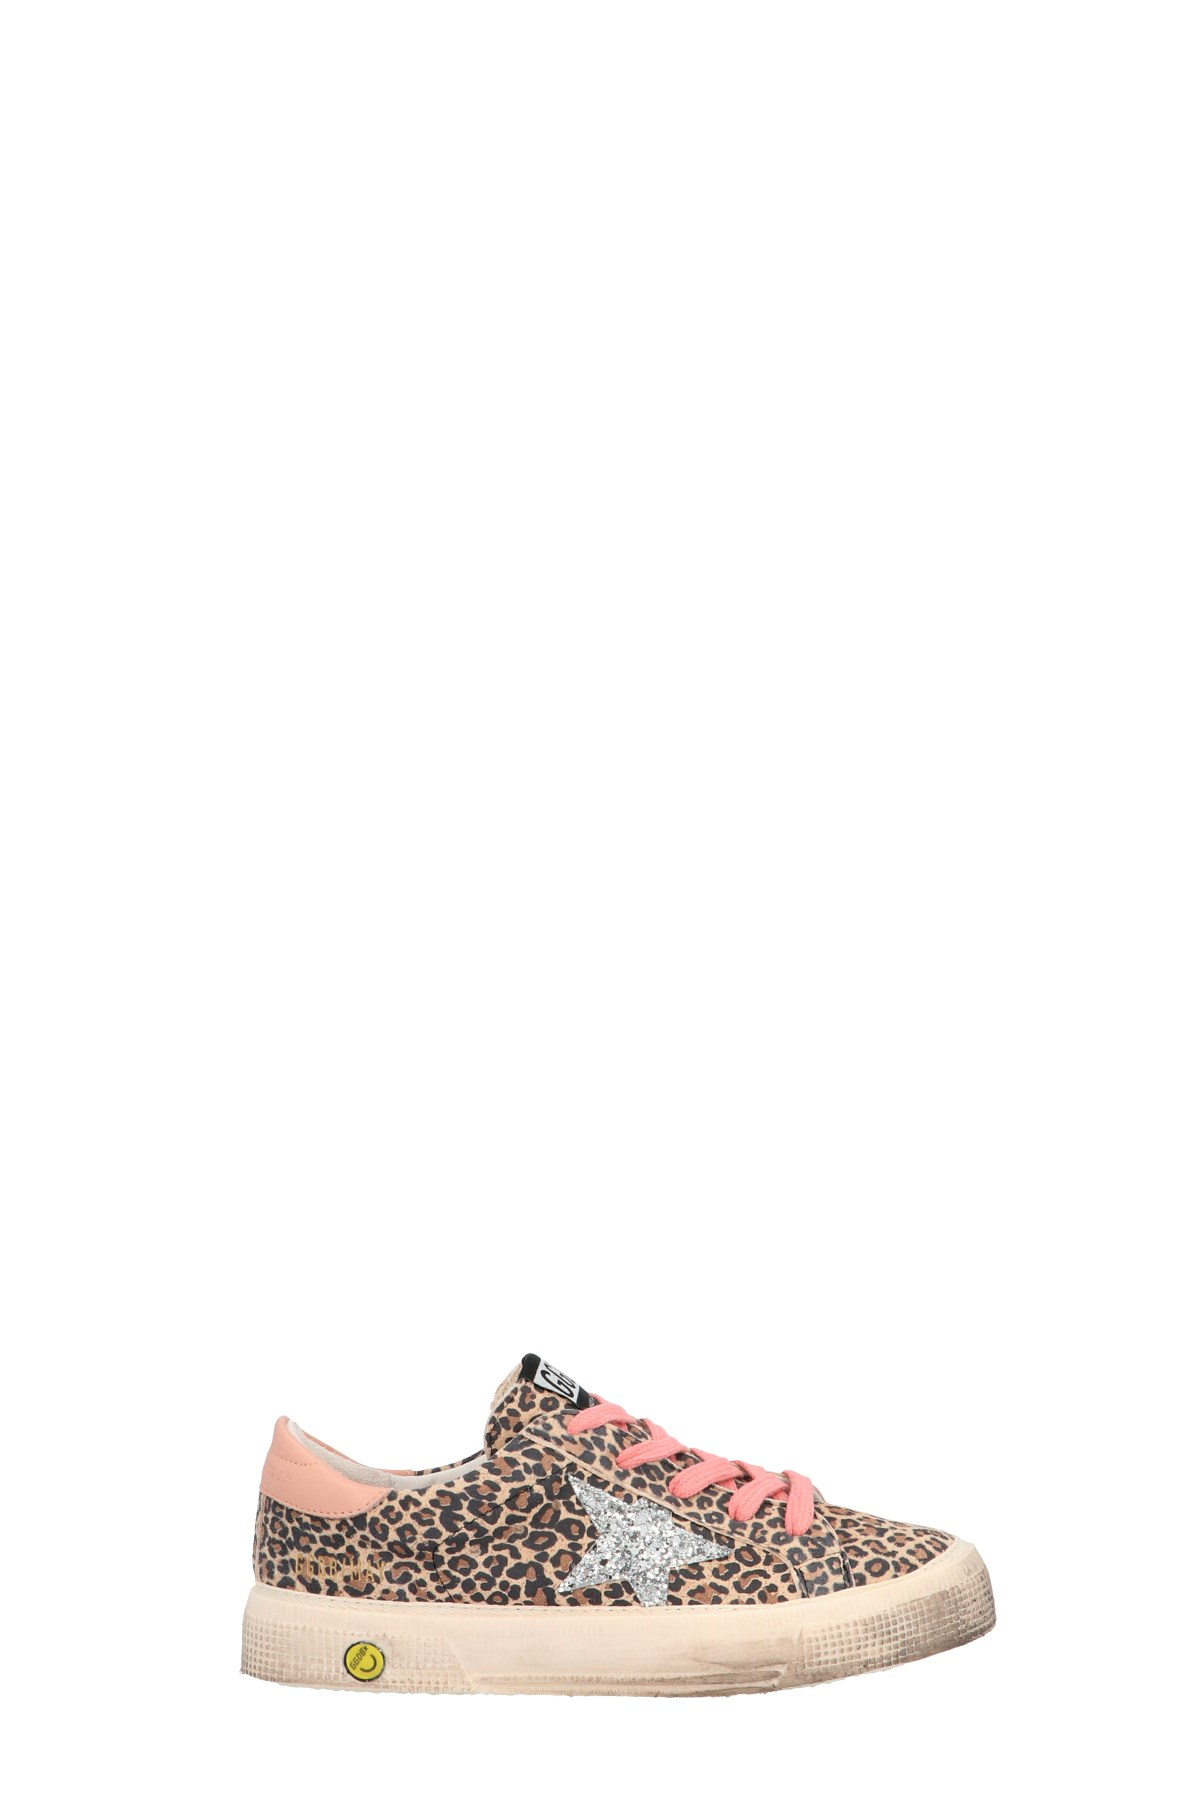 golden goose 'May' sneakers available